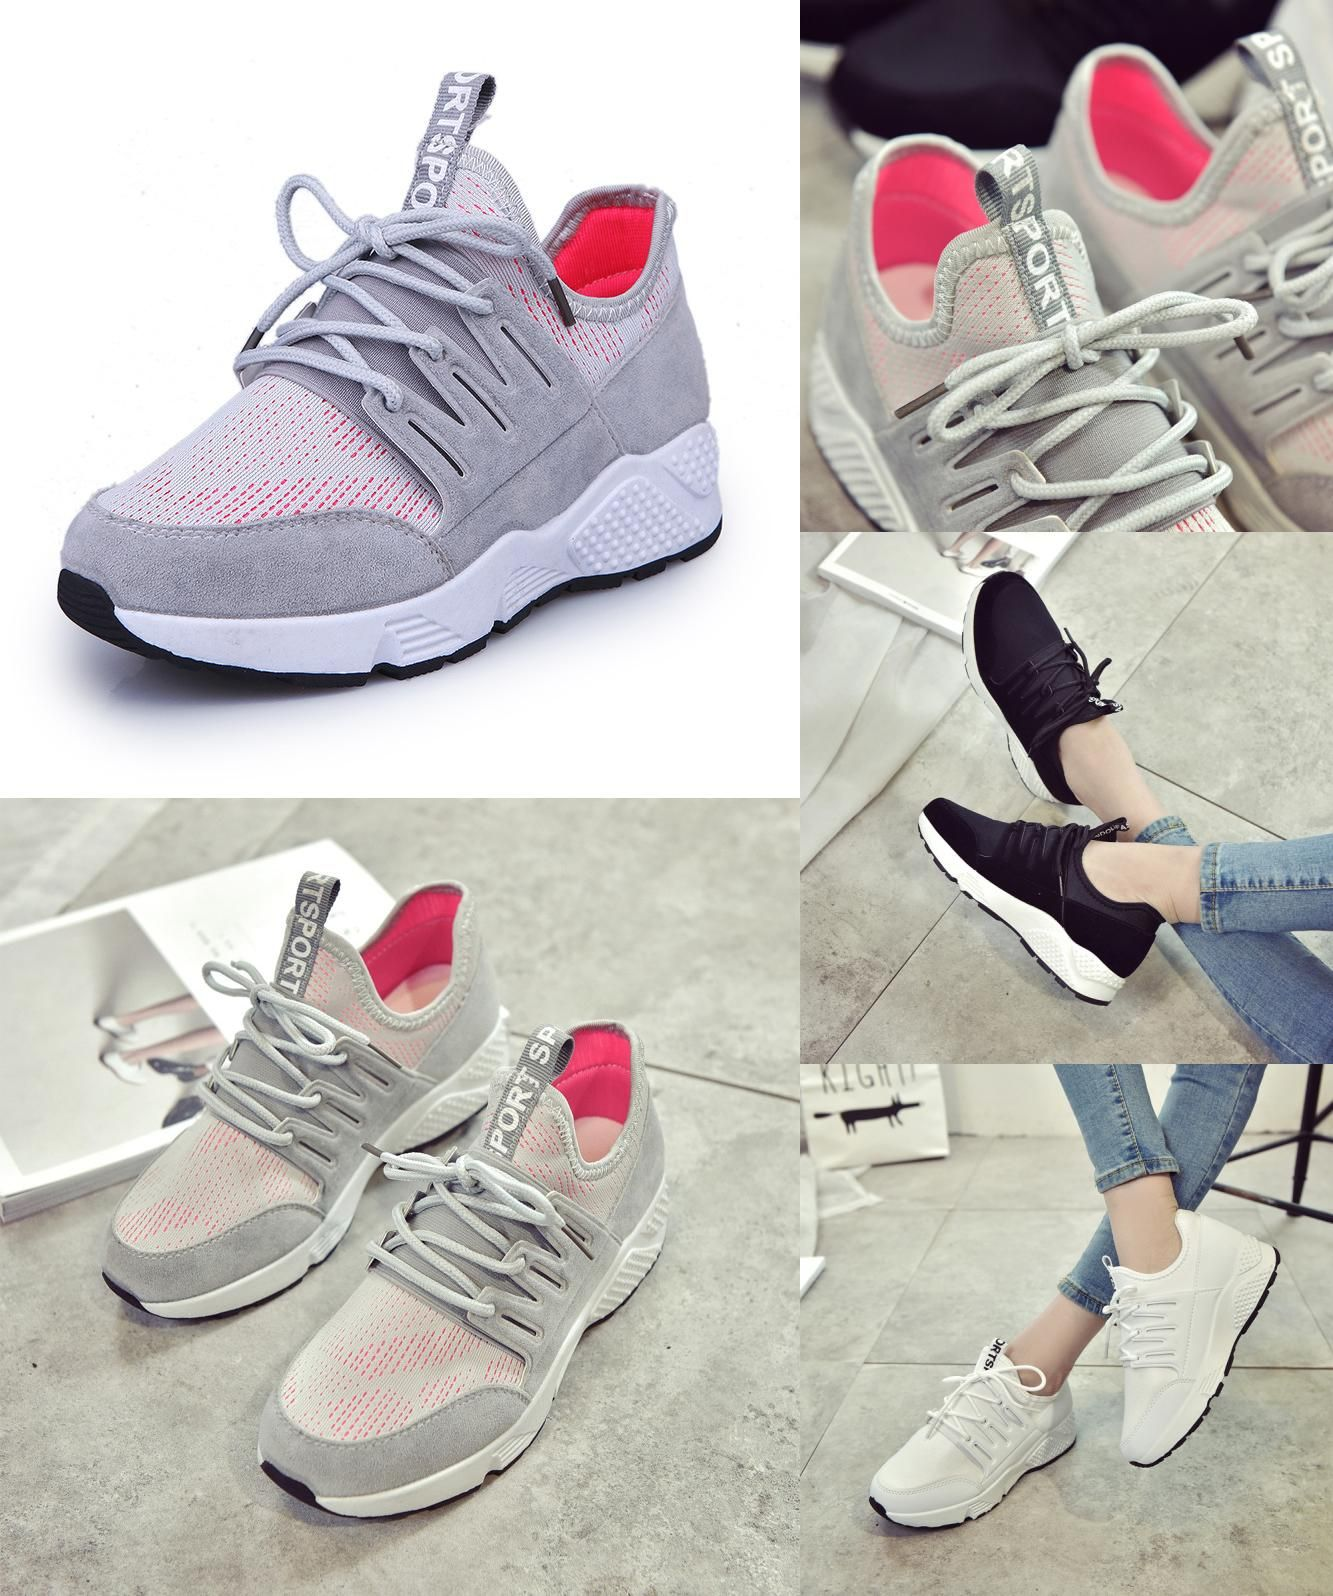 2017 new styel Women boost Shoes sports Shoes Casual Shoes Sneakers size 35-40 prices online perfect best seller cheap online cheap sale official clearance pay with paypal rO4oRkKI